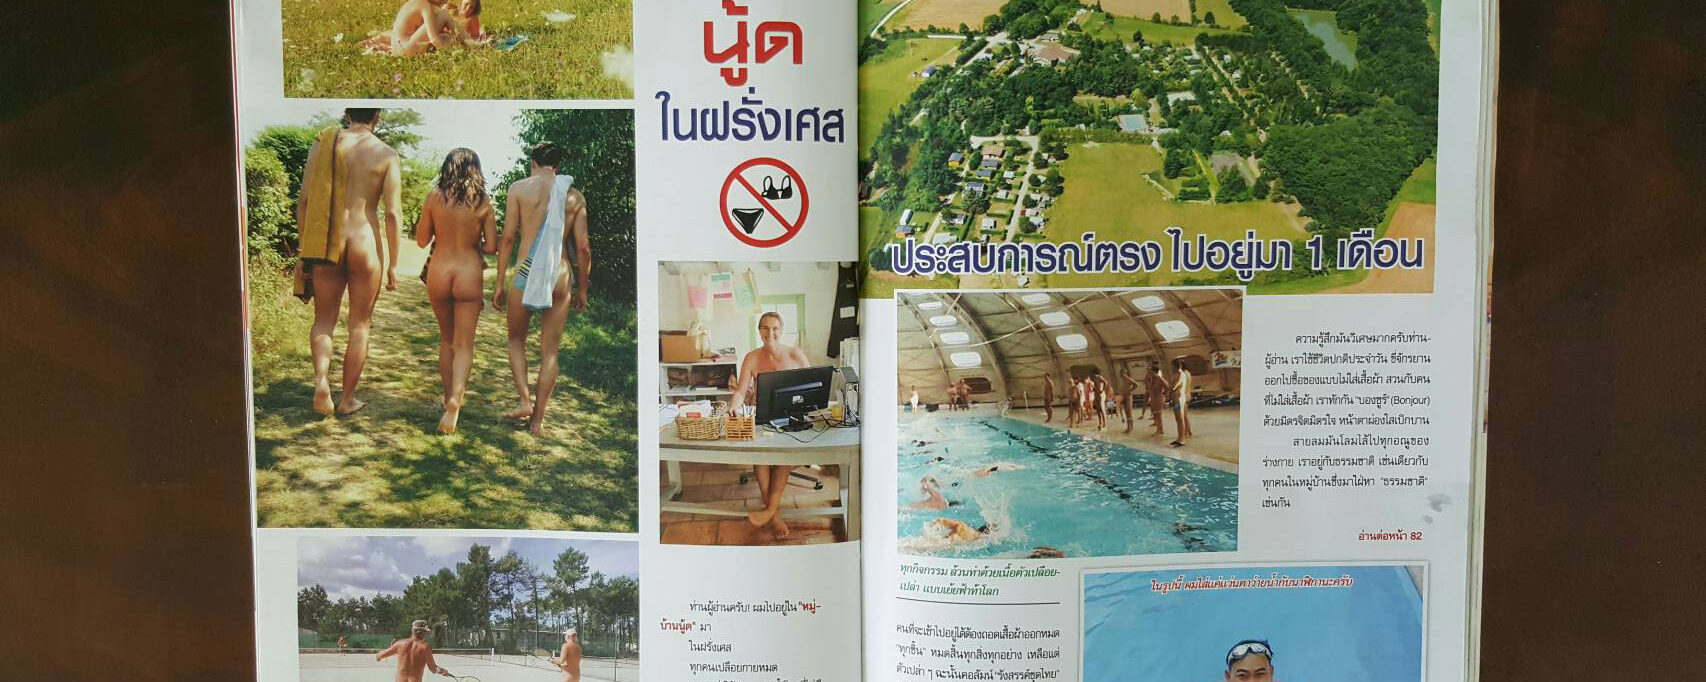 Popular Thai magazine shares experience from one month in French nude village